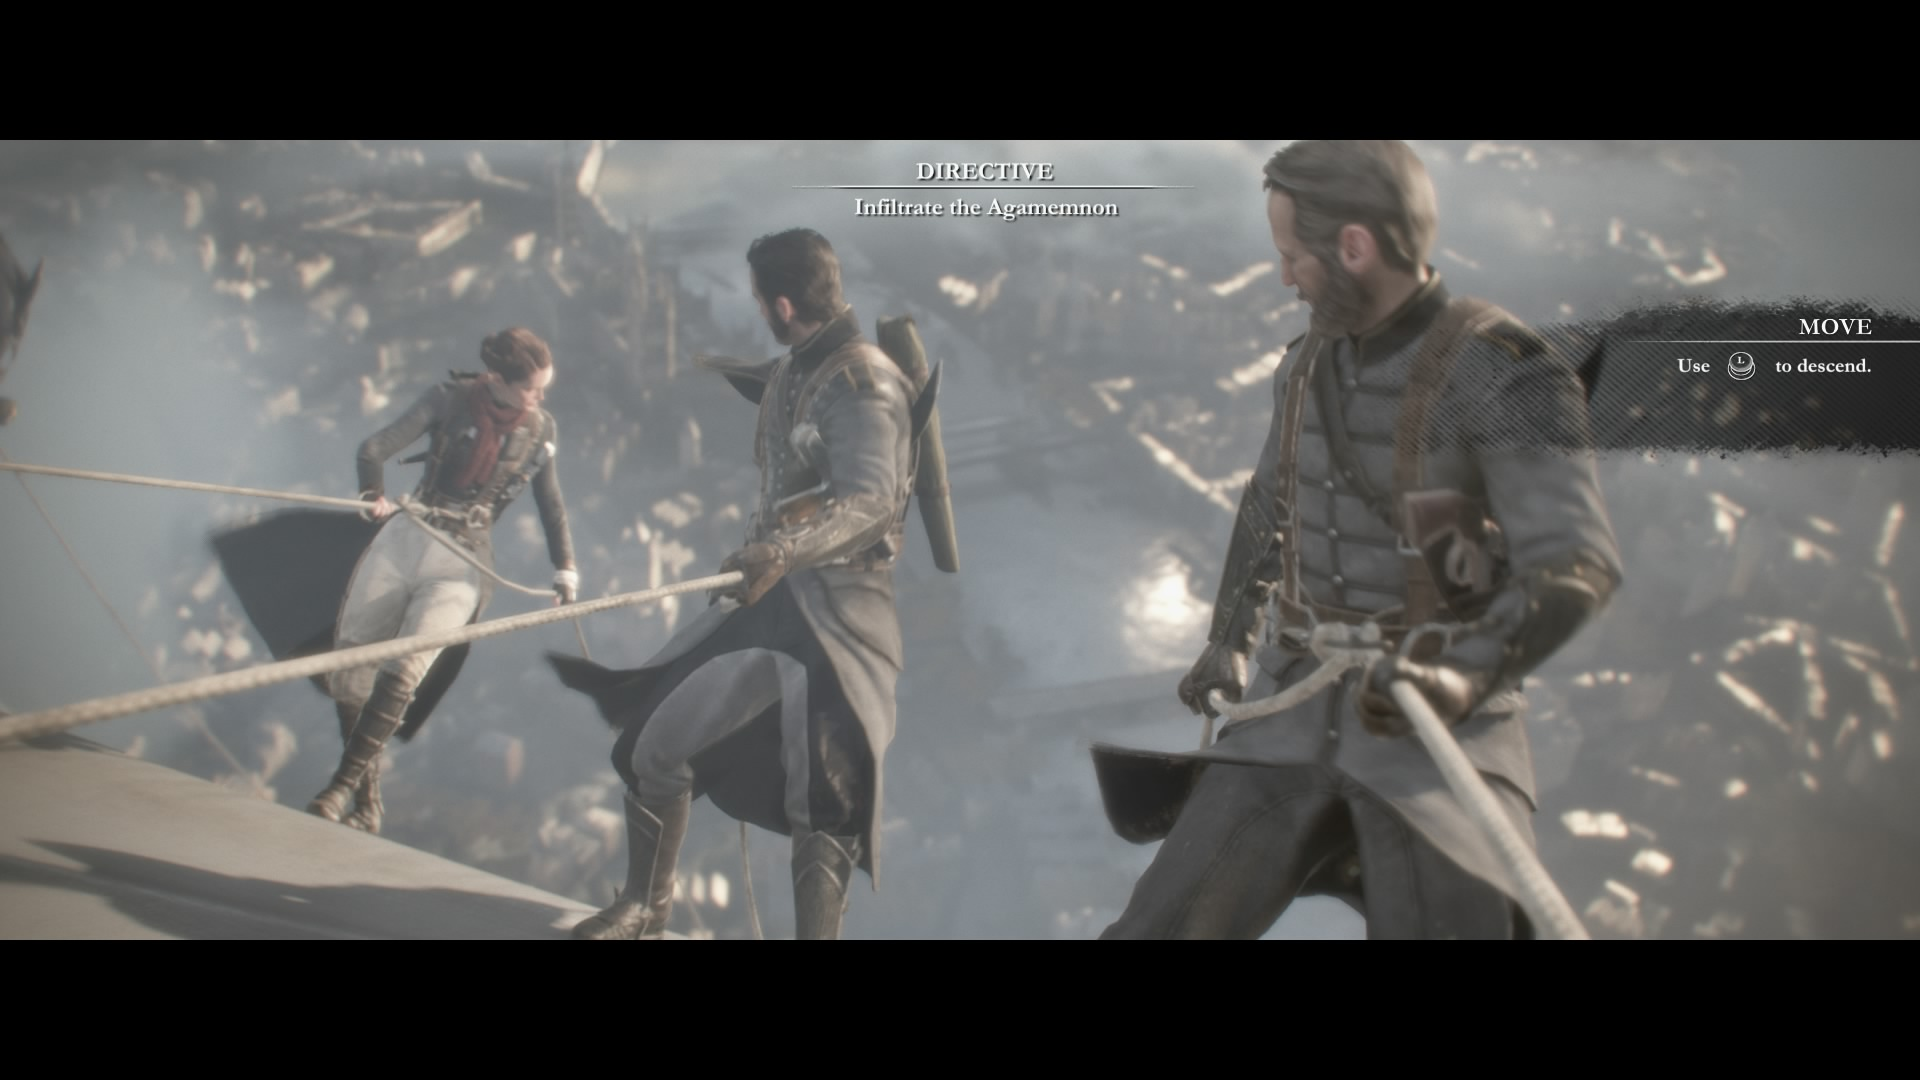 The Order 1886 Infiltrate the Agamemnon